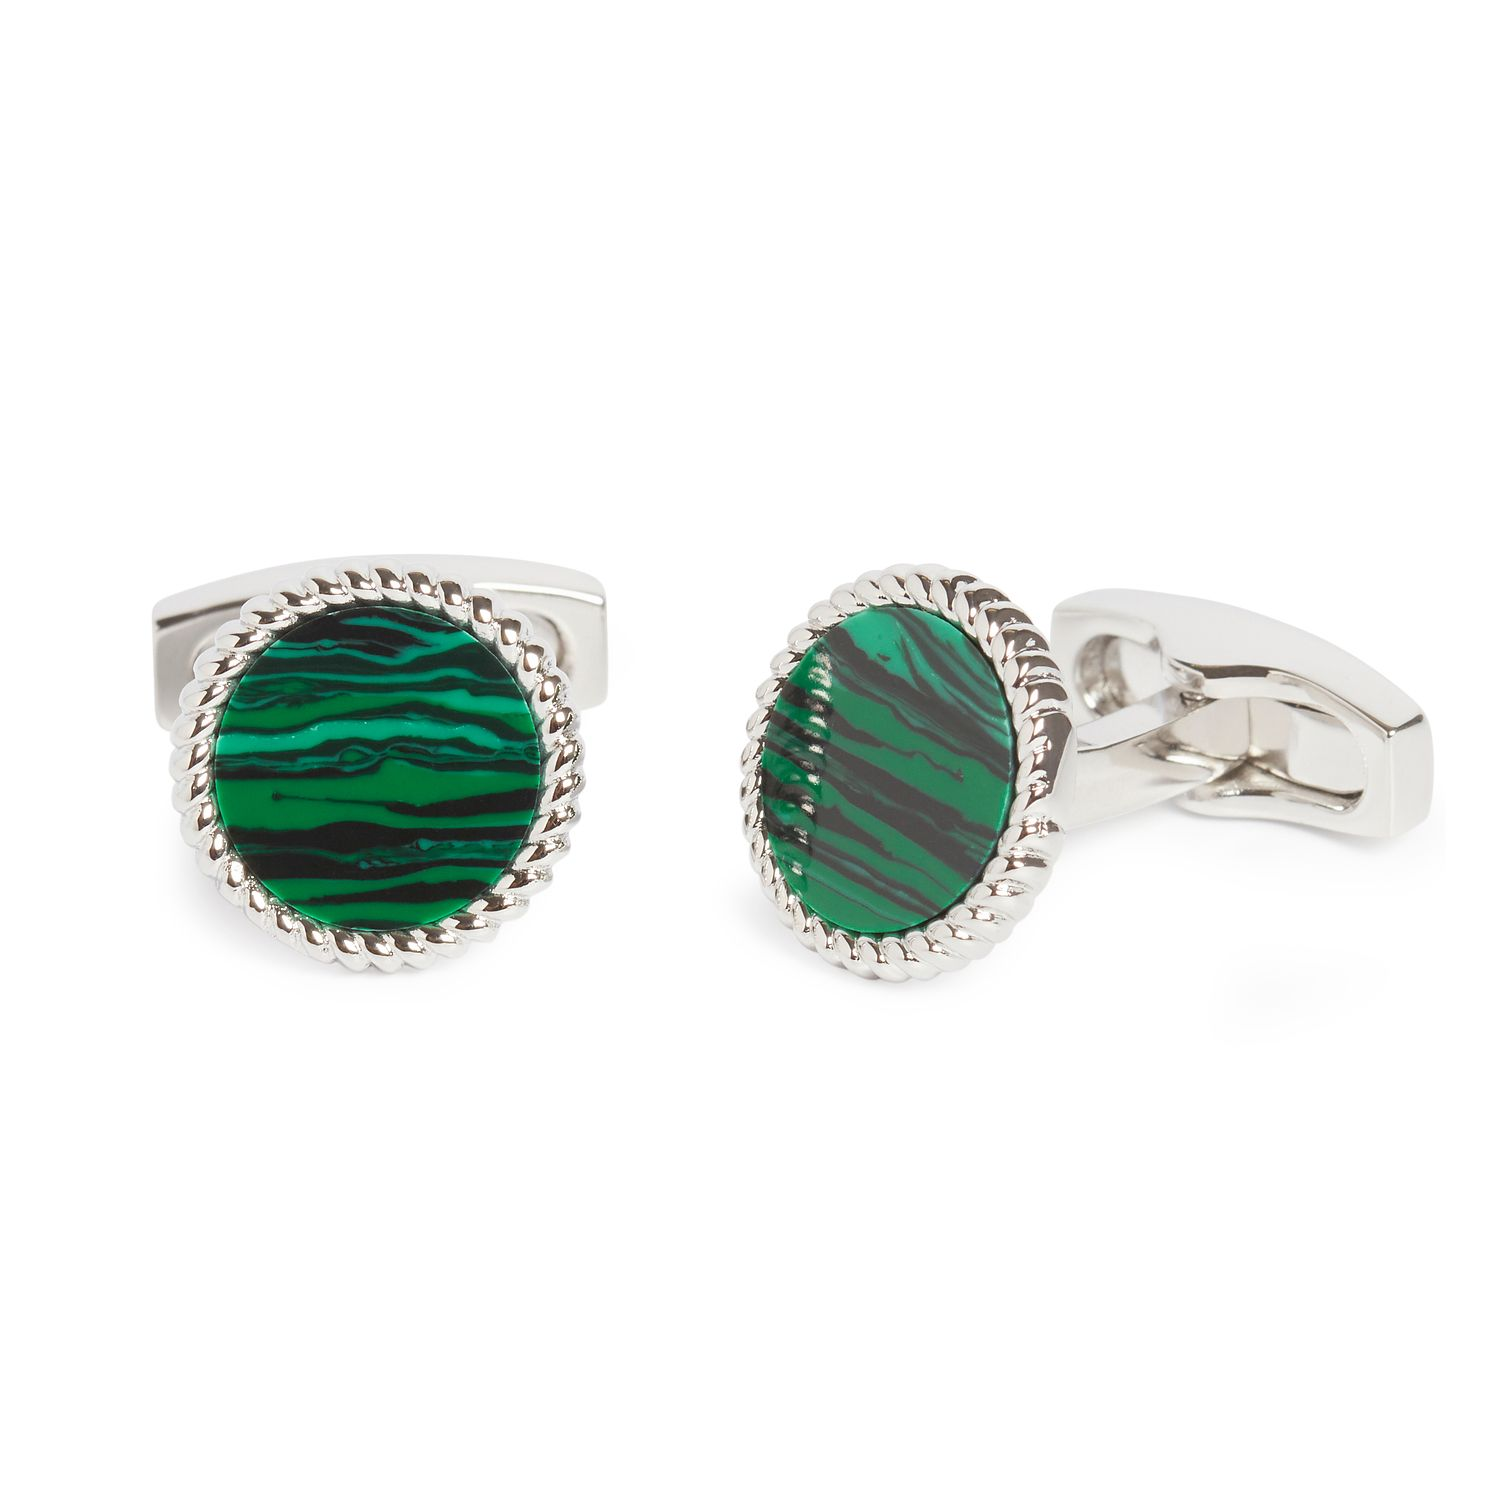 Simon Carter Men's Stainless Steel Malachite Rope Cufflinks - Product number 4946197